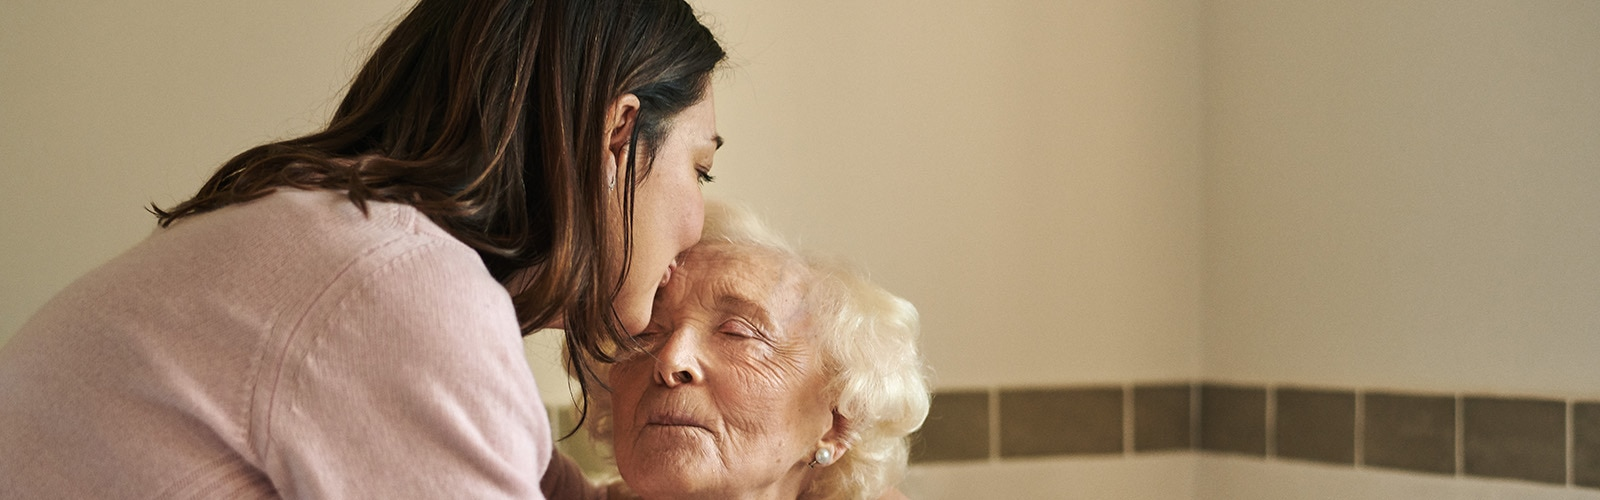 Carer kissing elderly woman with incontinence on the forehead